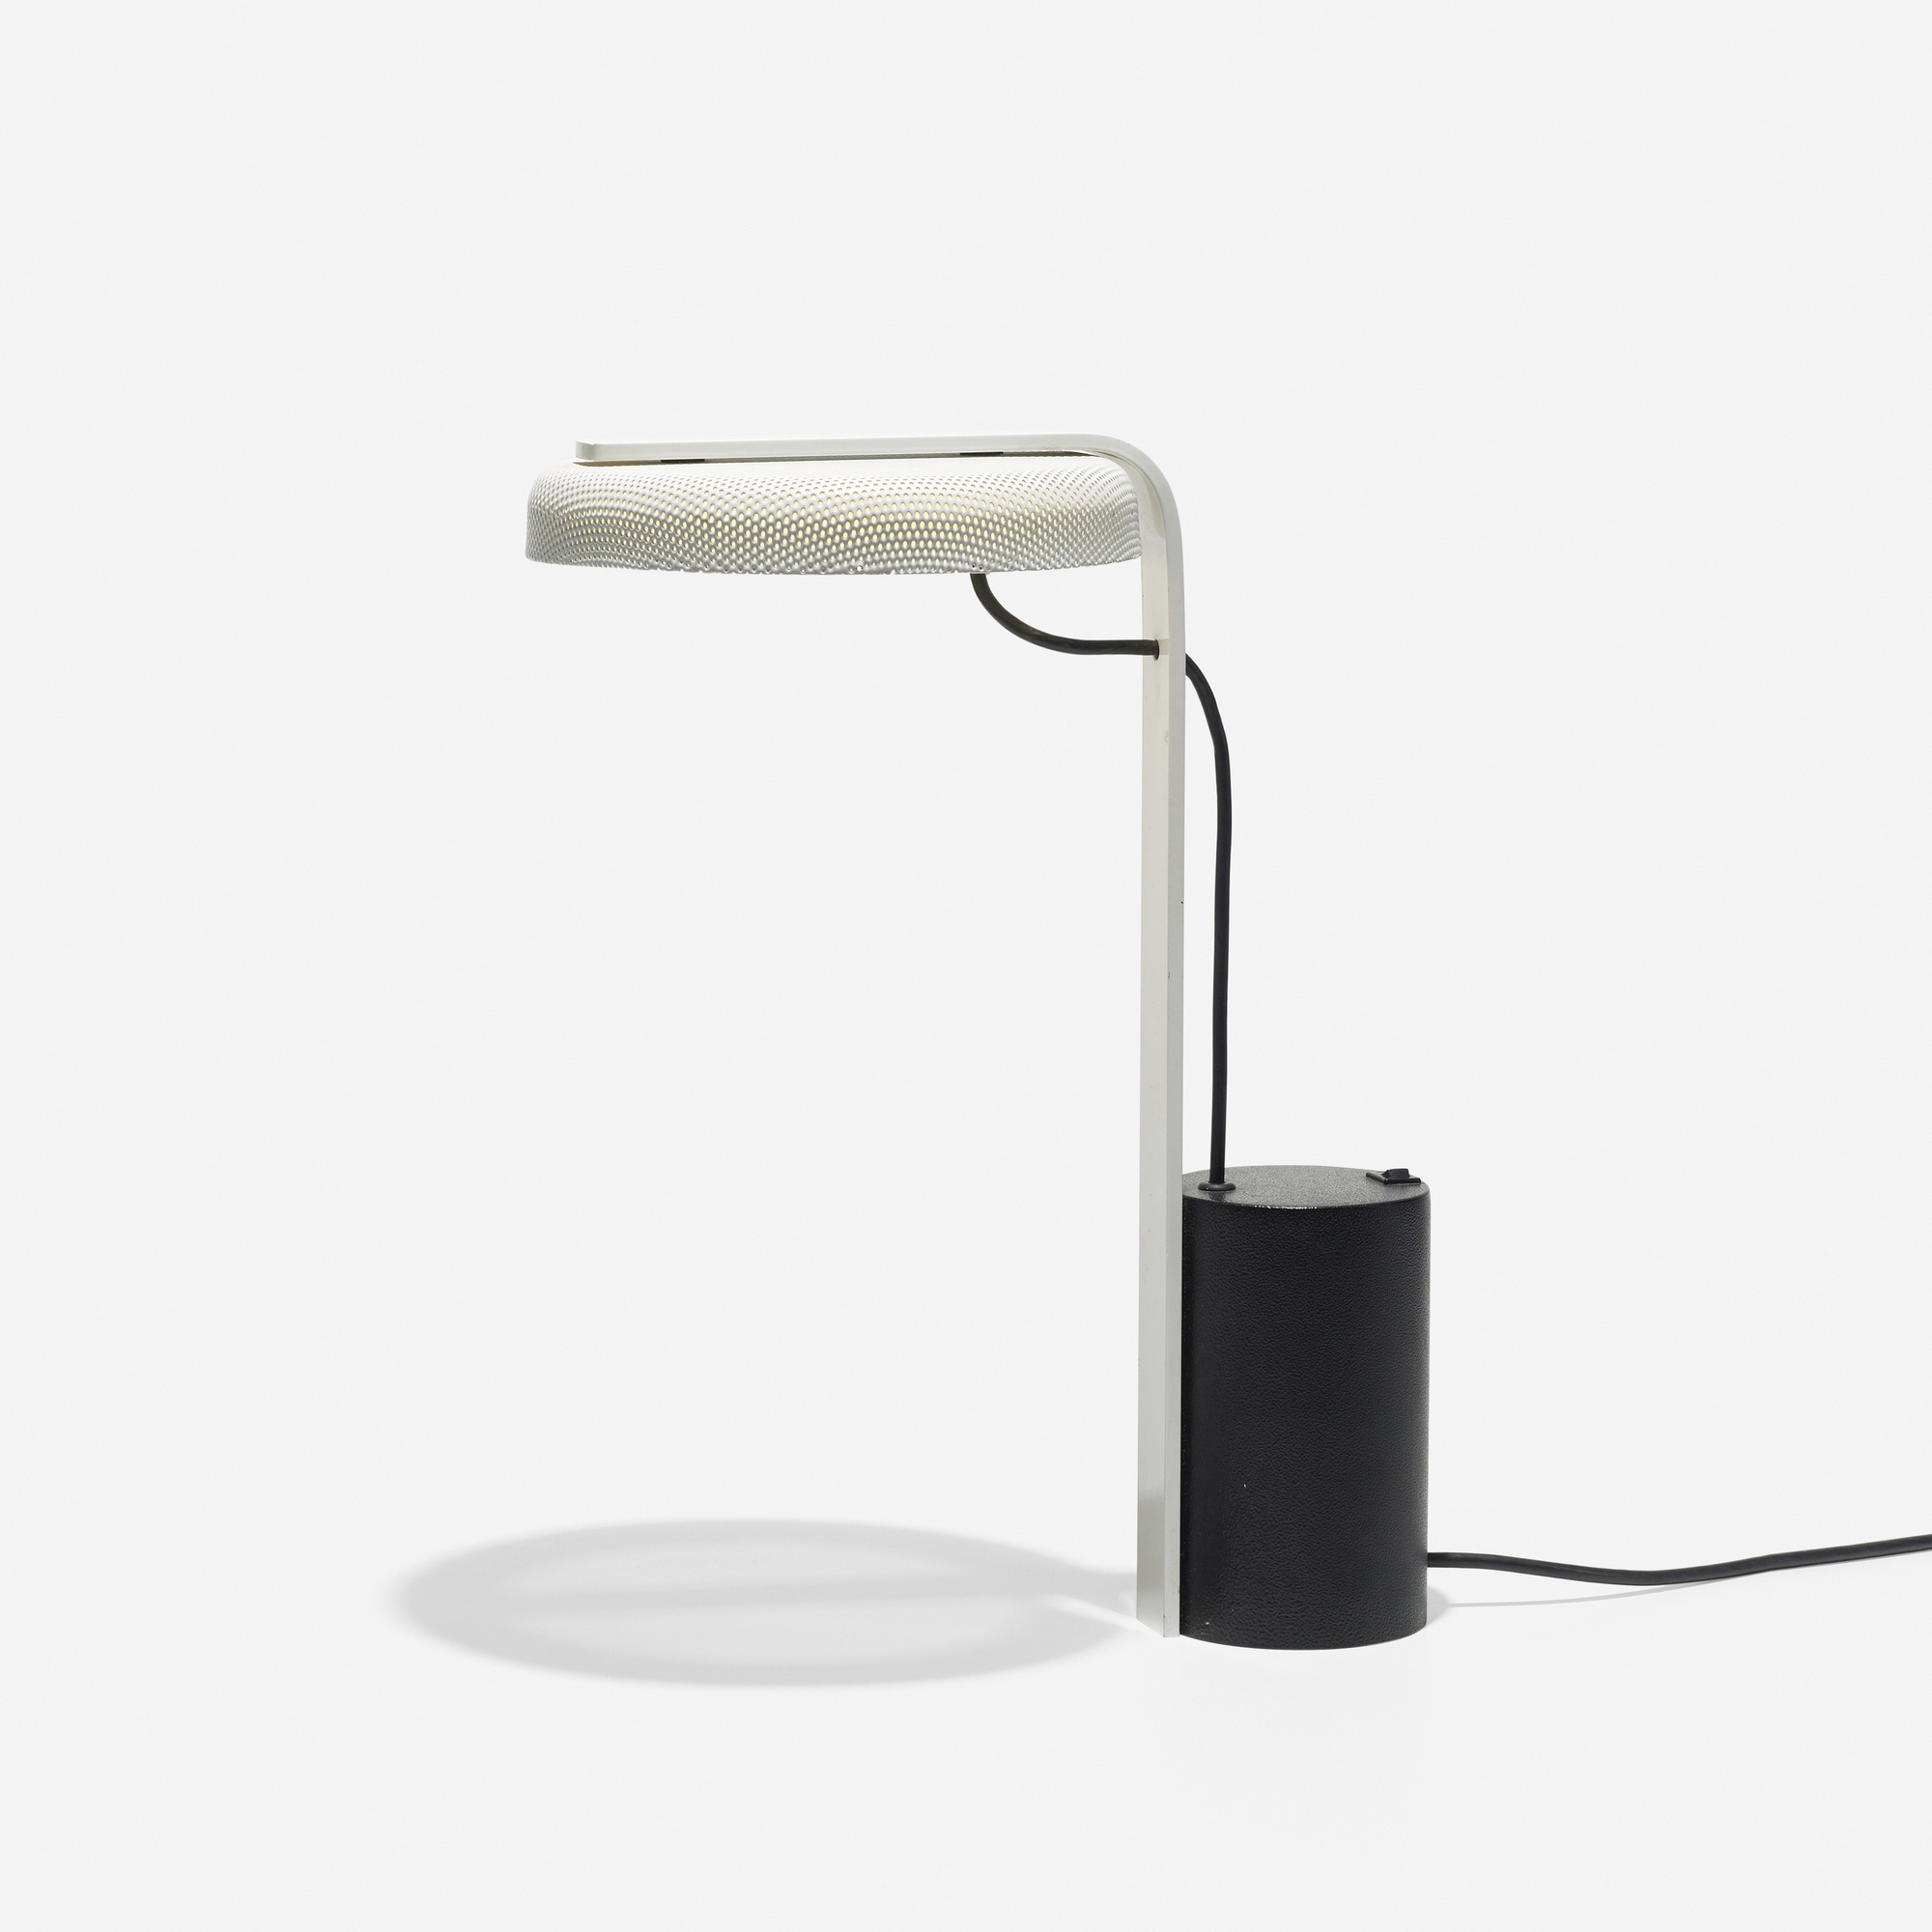 678: Ron Rezek / table lamp (1 of 1)